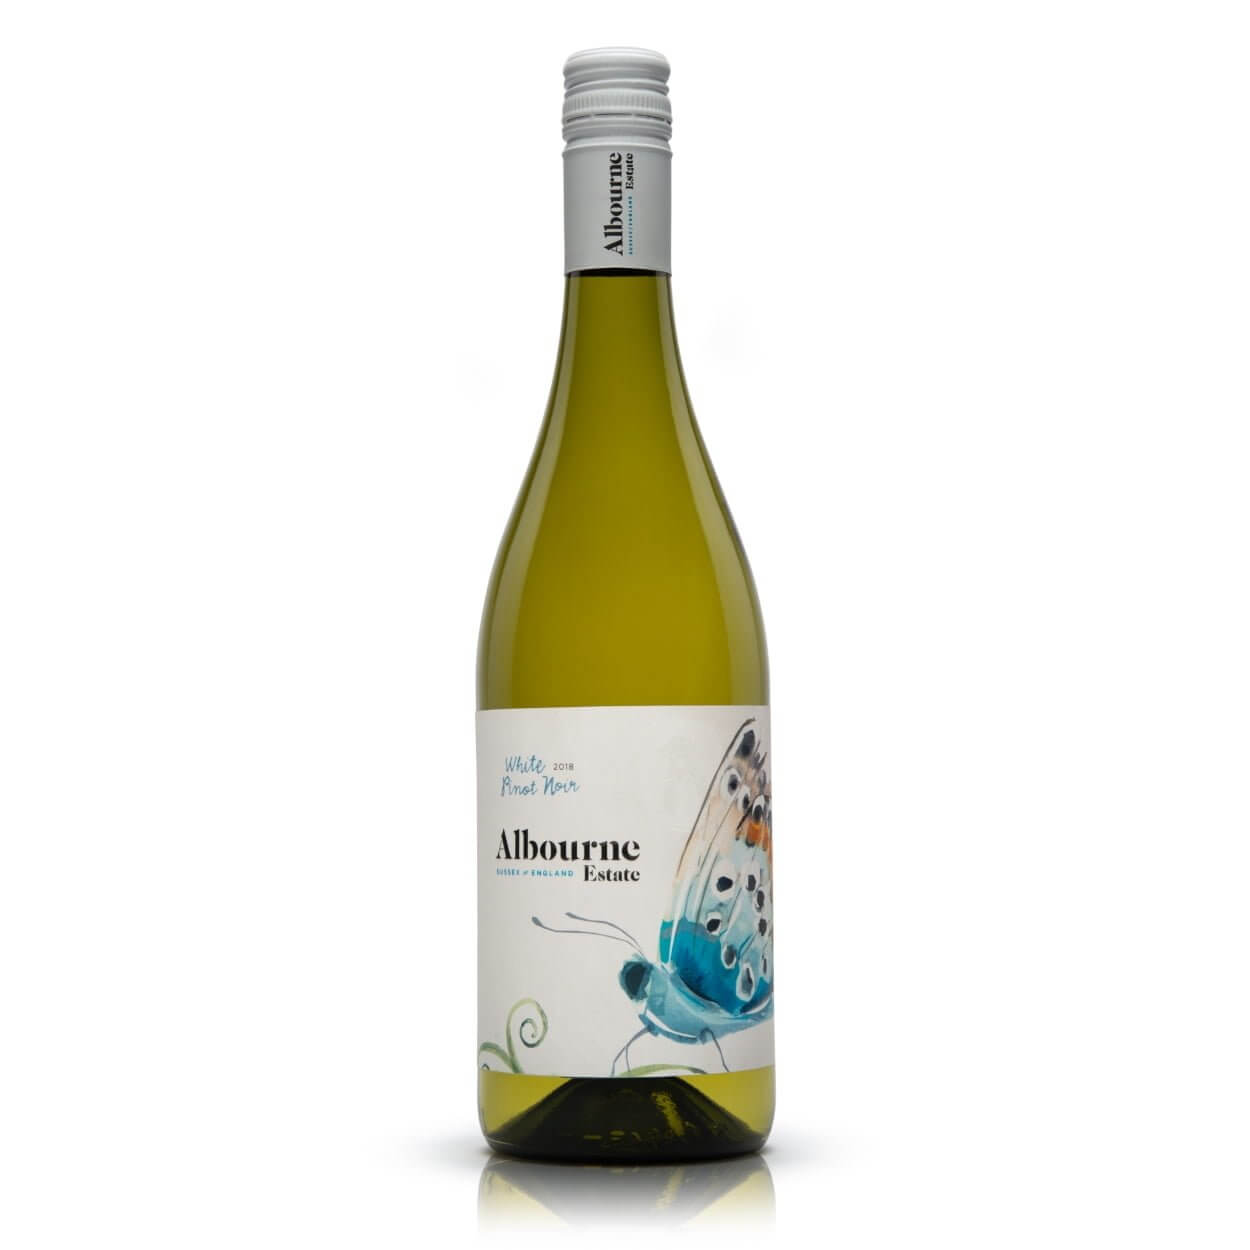 Albourne Estate White Pinot Noir 2018 English wine